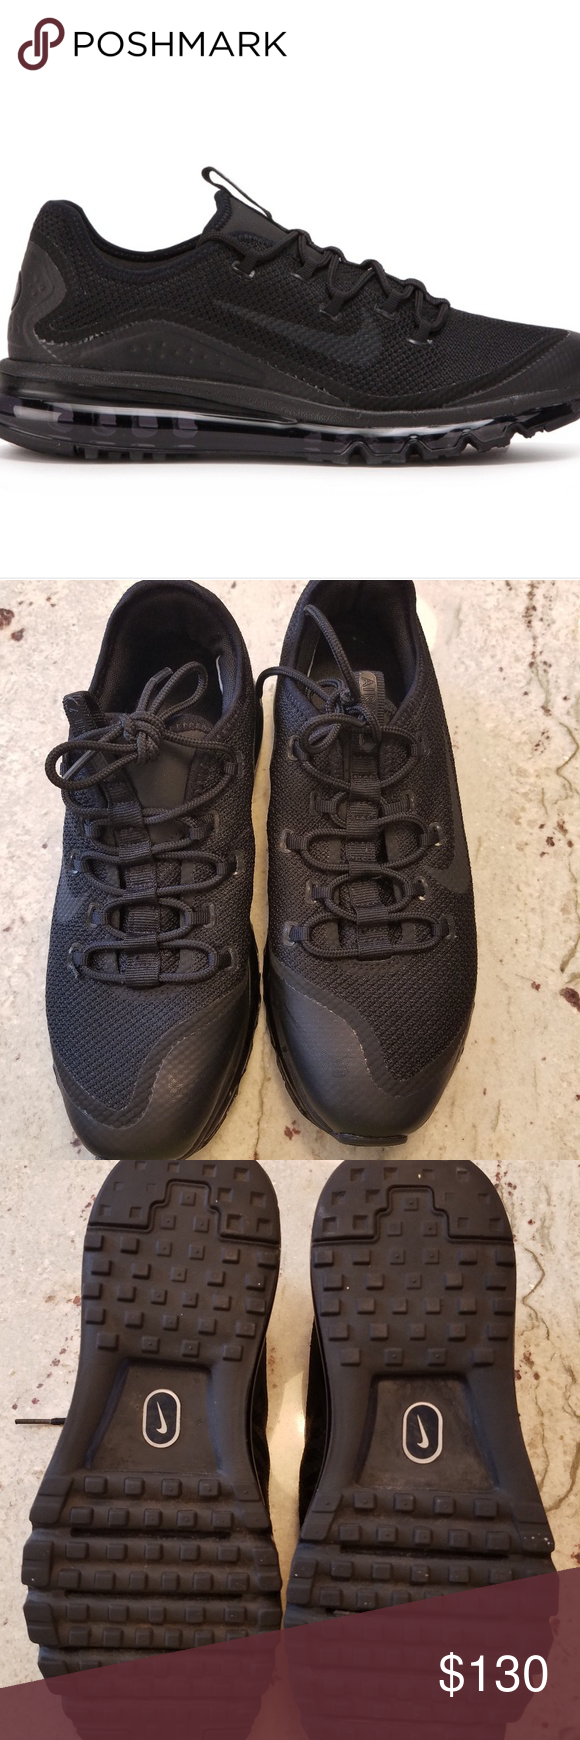 0f861e0a2b Men's Nike Air Max More Brand new, worn once. Men's size 8.5US Style 898013-002  Black on Black Nike Shoes Sneakers